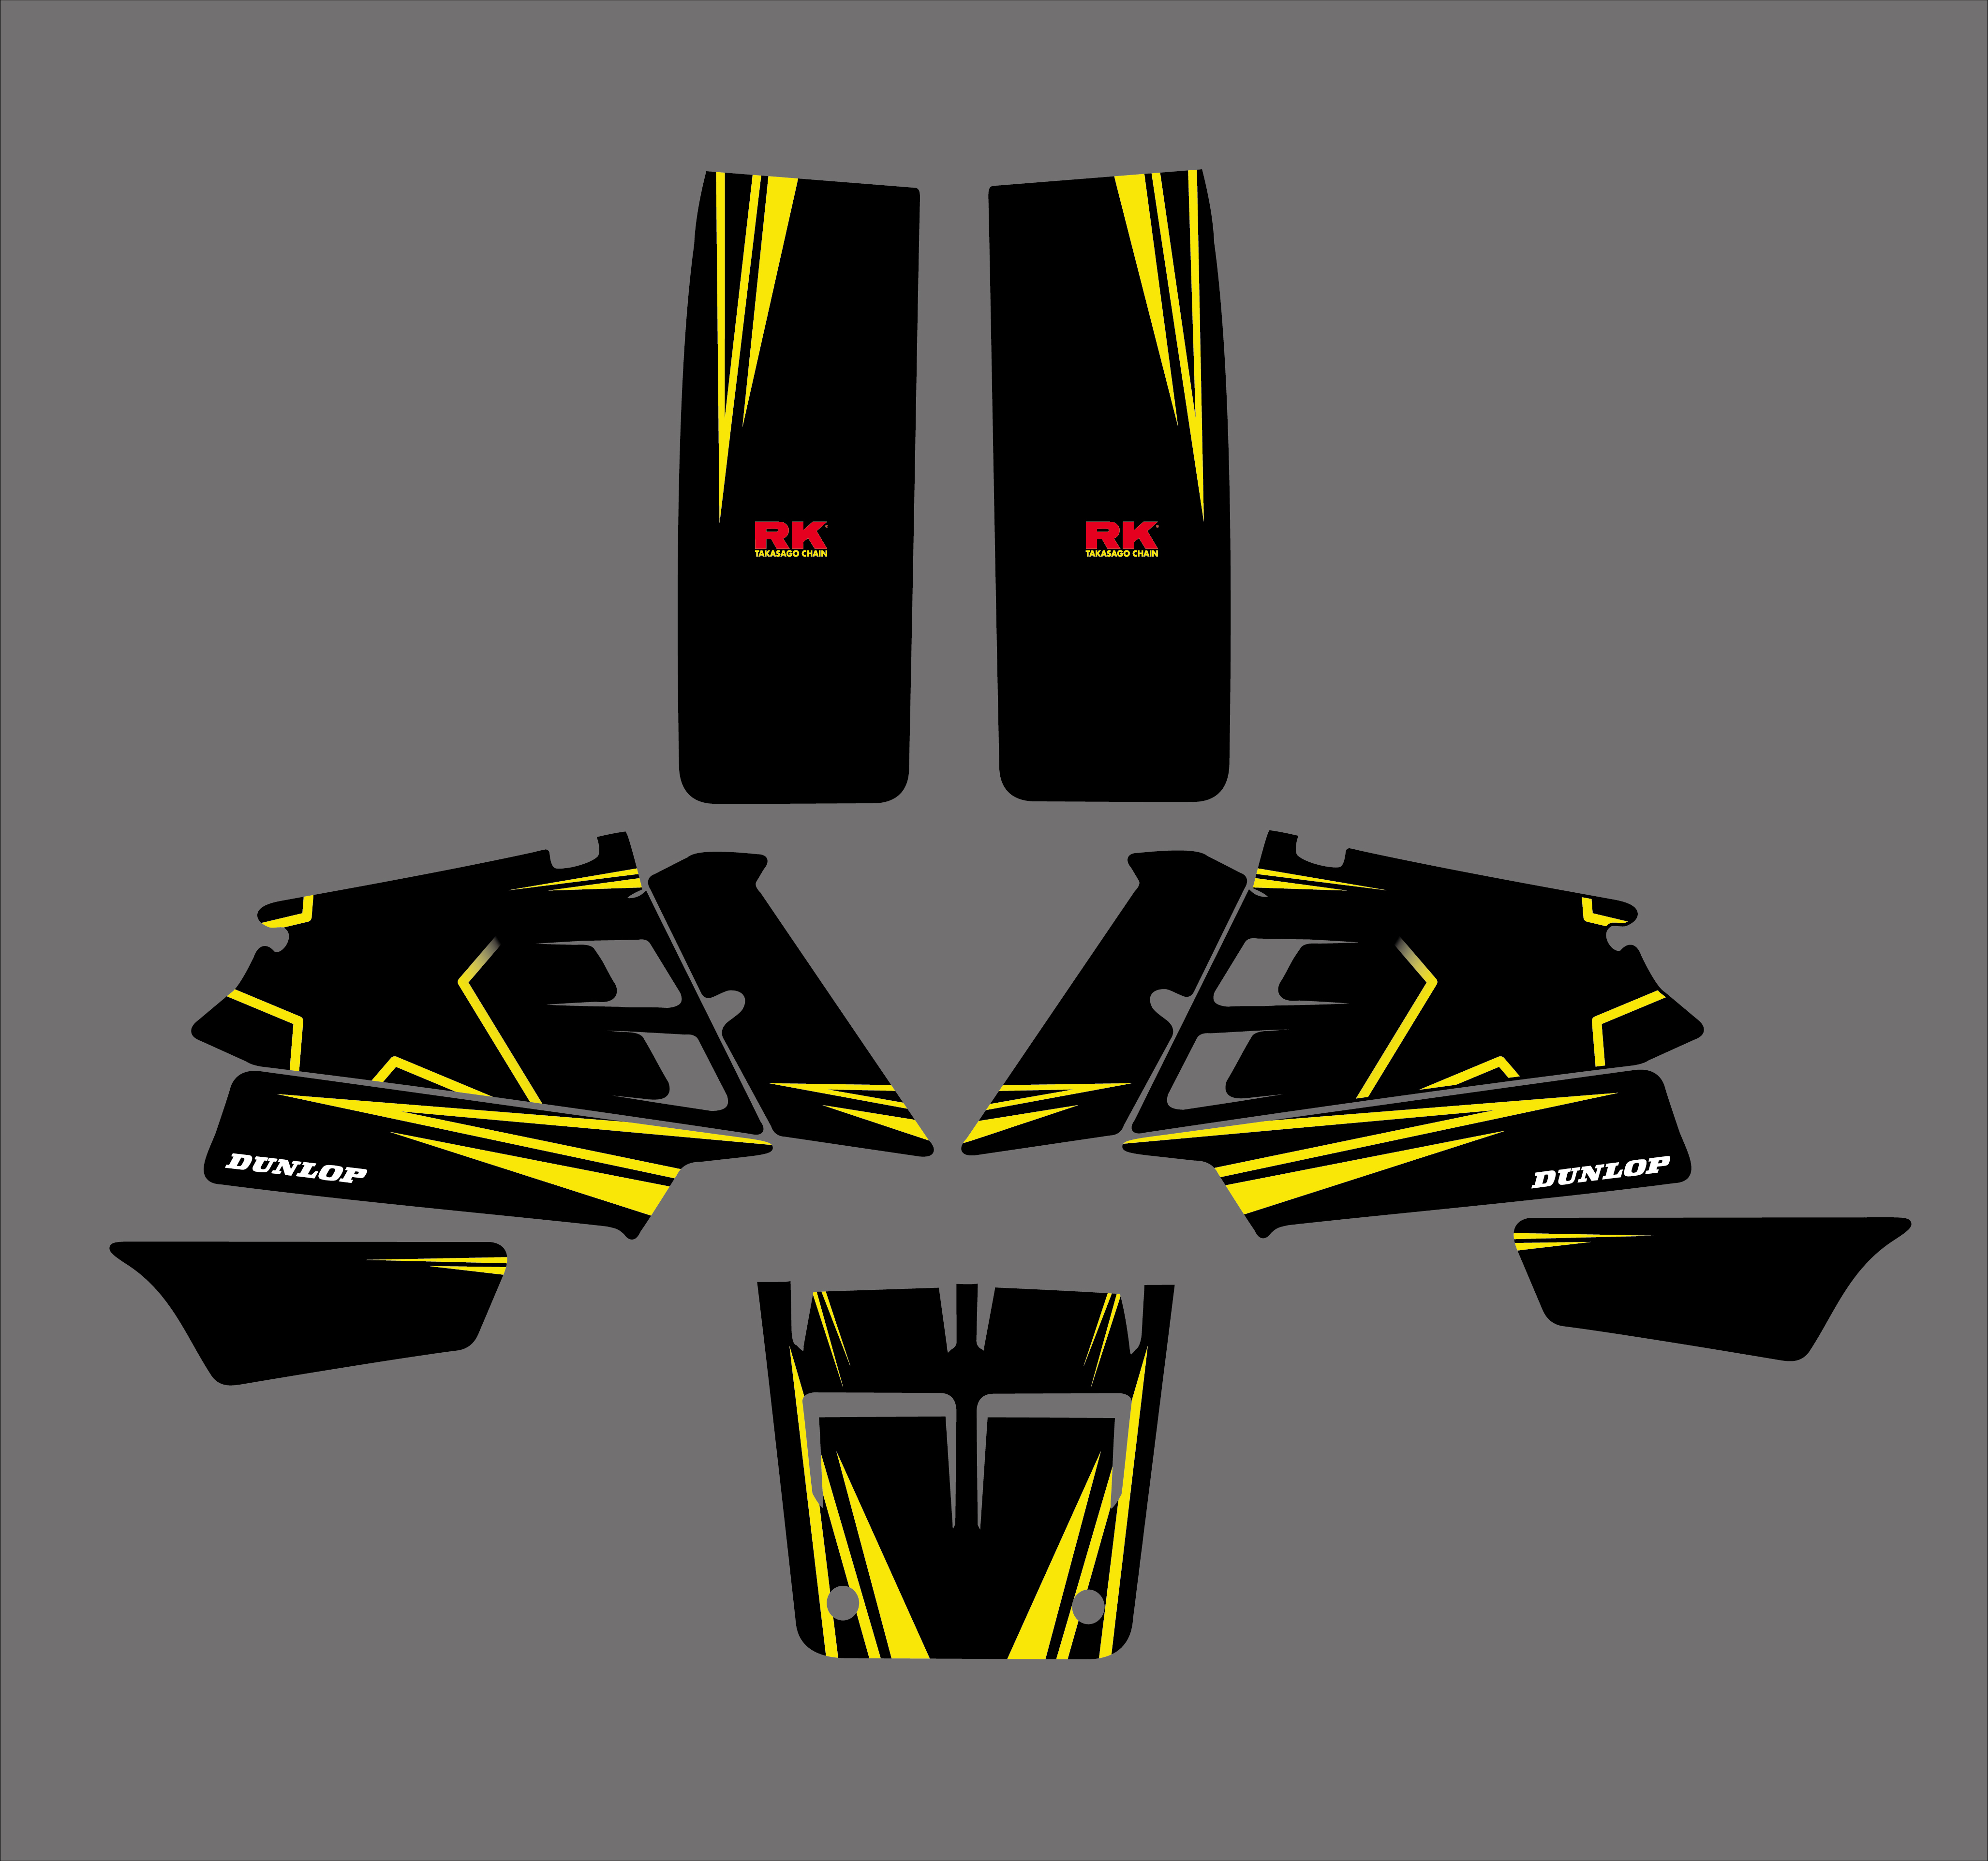 New Style DECALS STICKERS Graphics Kits for Yamaha BANSHEE 350 YFZ350 1987-2002 2003 2004 2005 Moto Decor Accessories Pegatina image